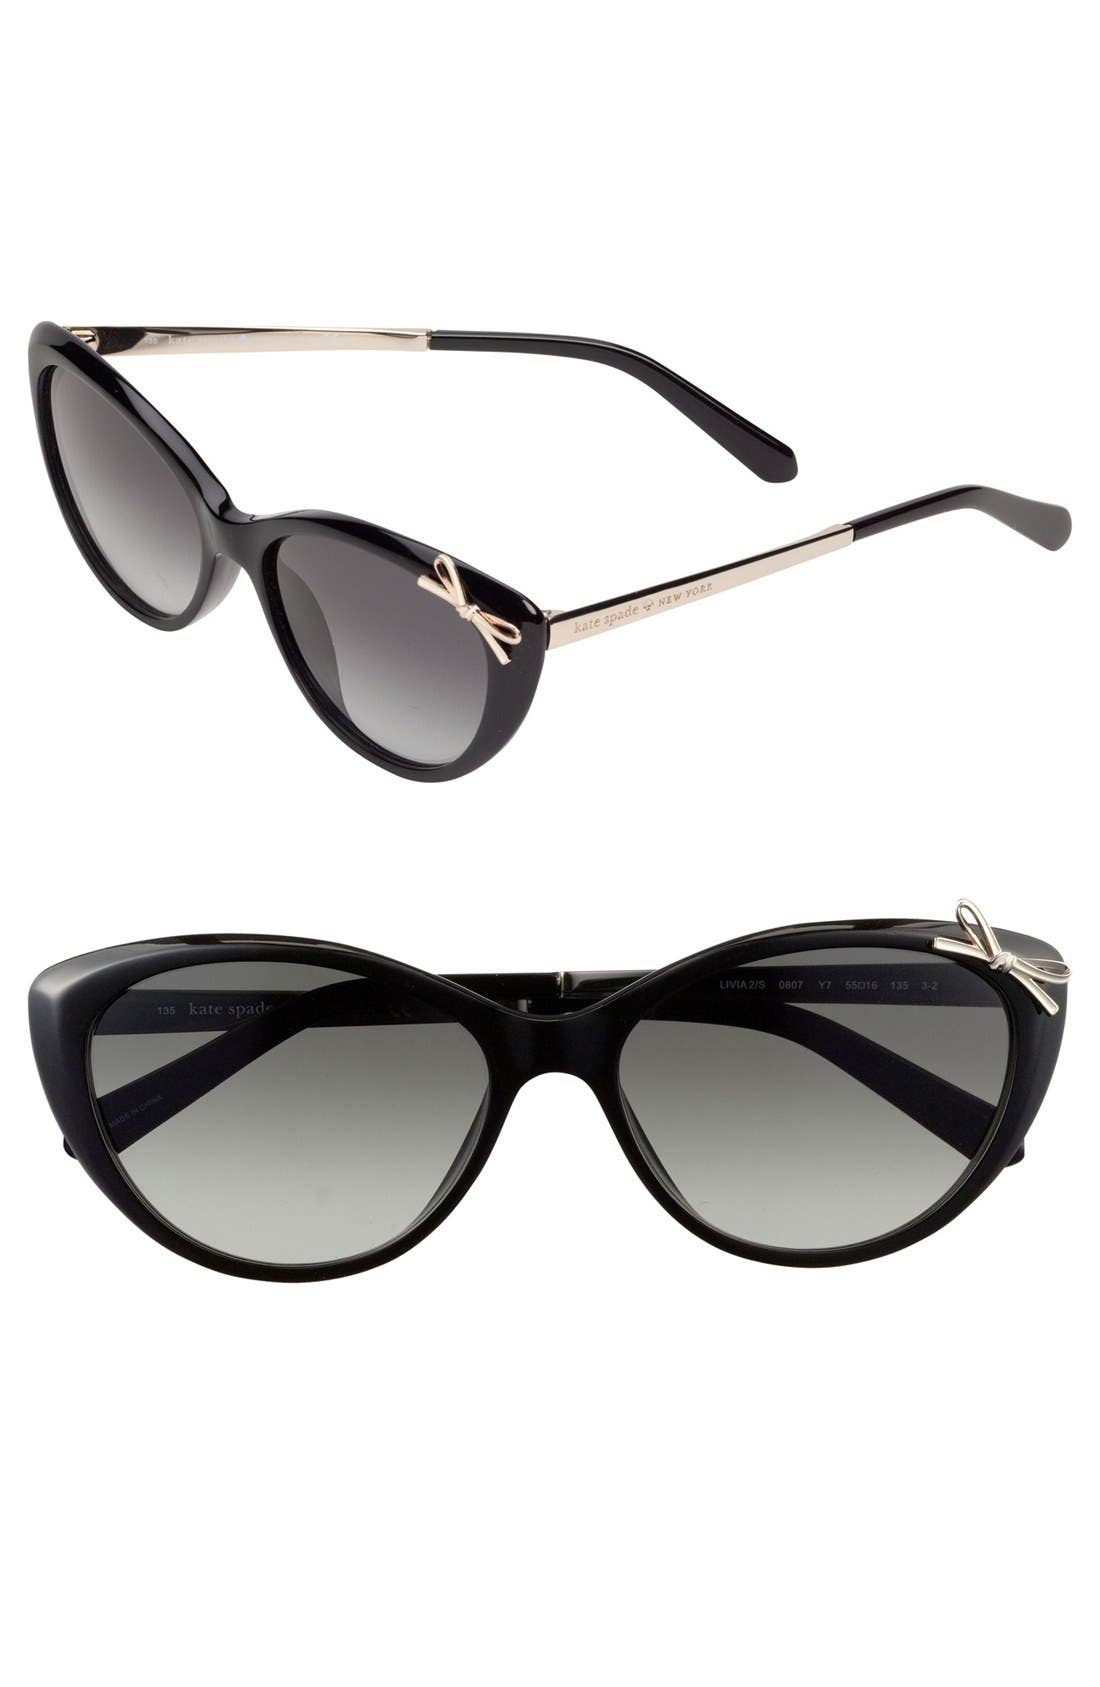 Alternate Image 1 Selected - kate spade new york 'livia 2' 55mm sunglasses